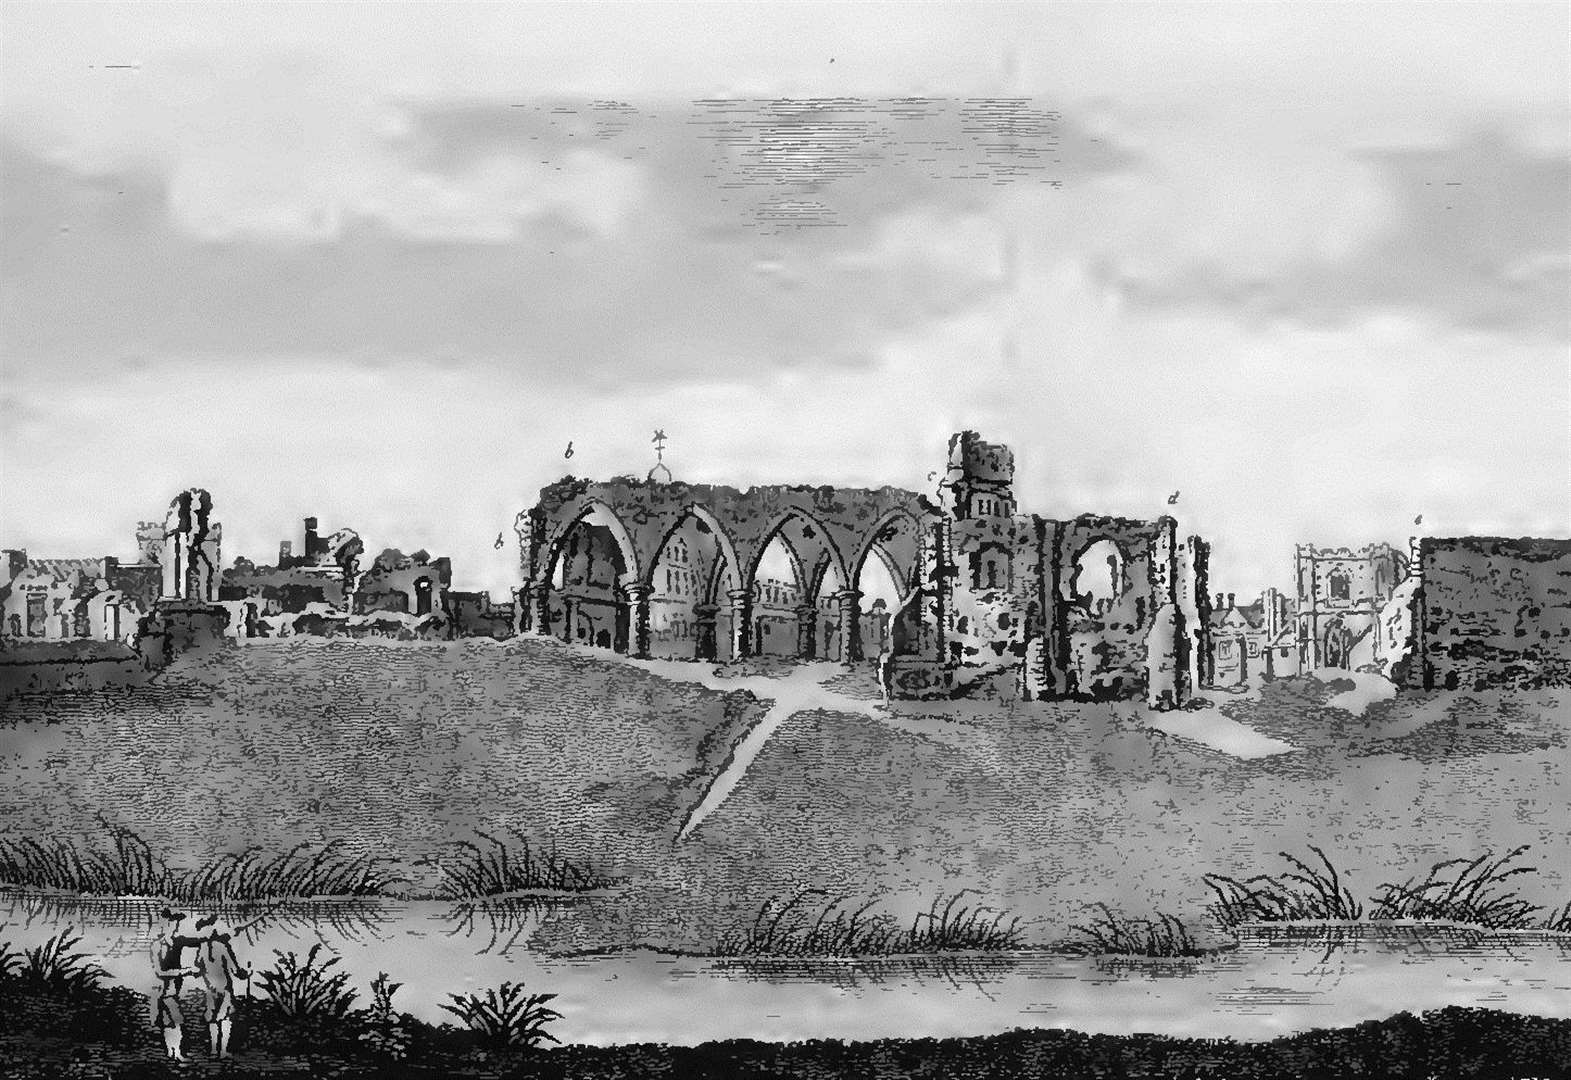 Study reveals Abbey site's secrets